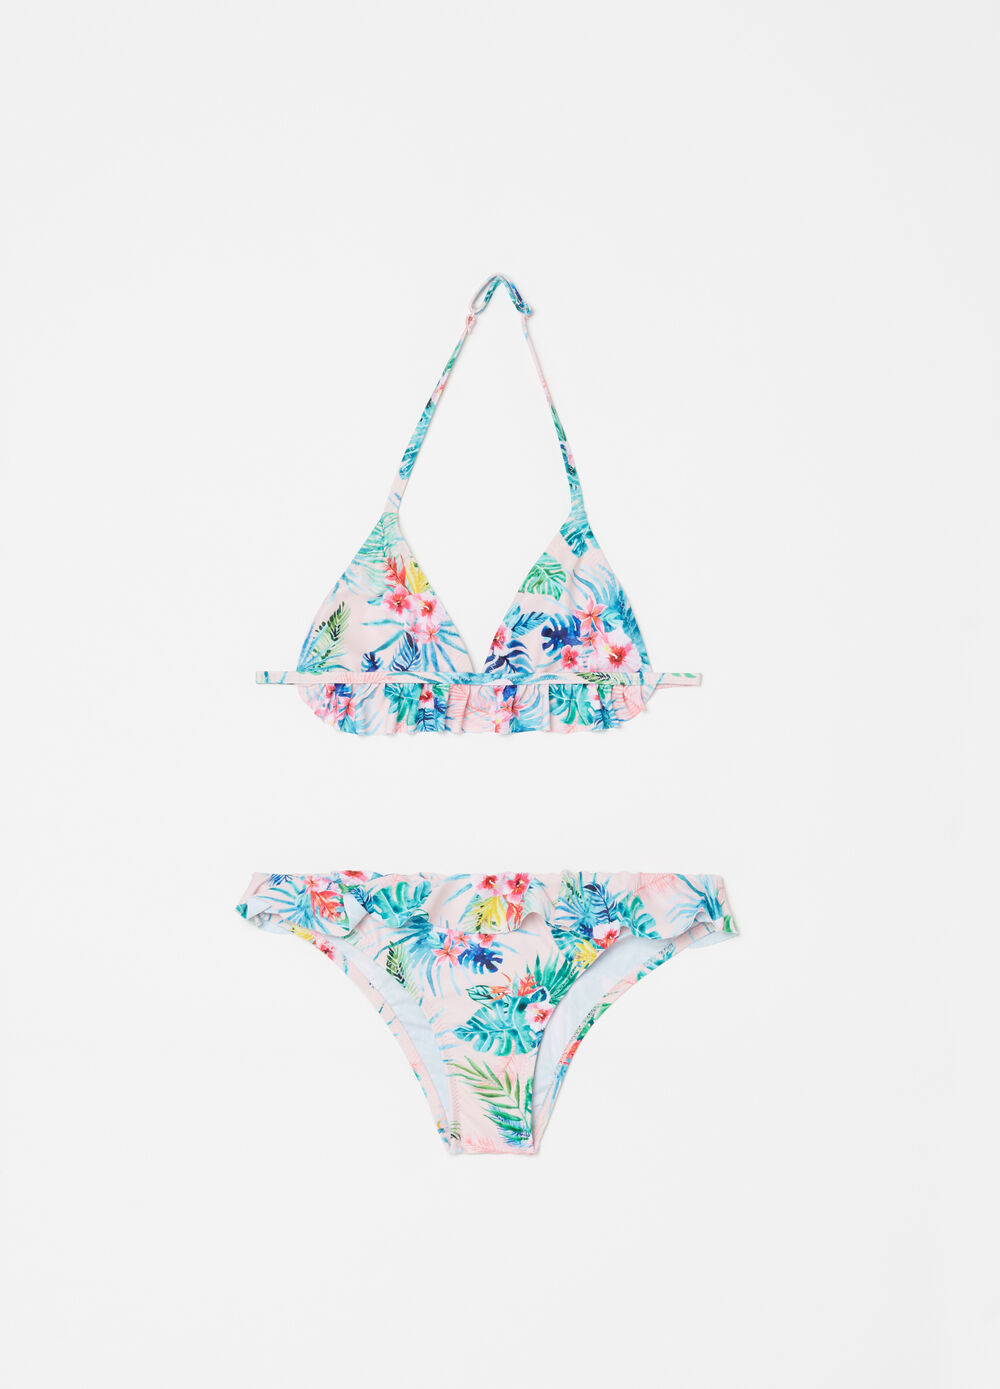 Bikini with triangle top and floral briefs with flounce